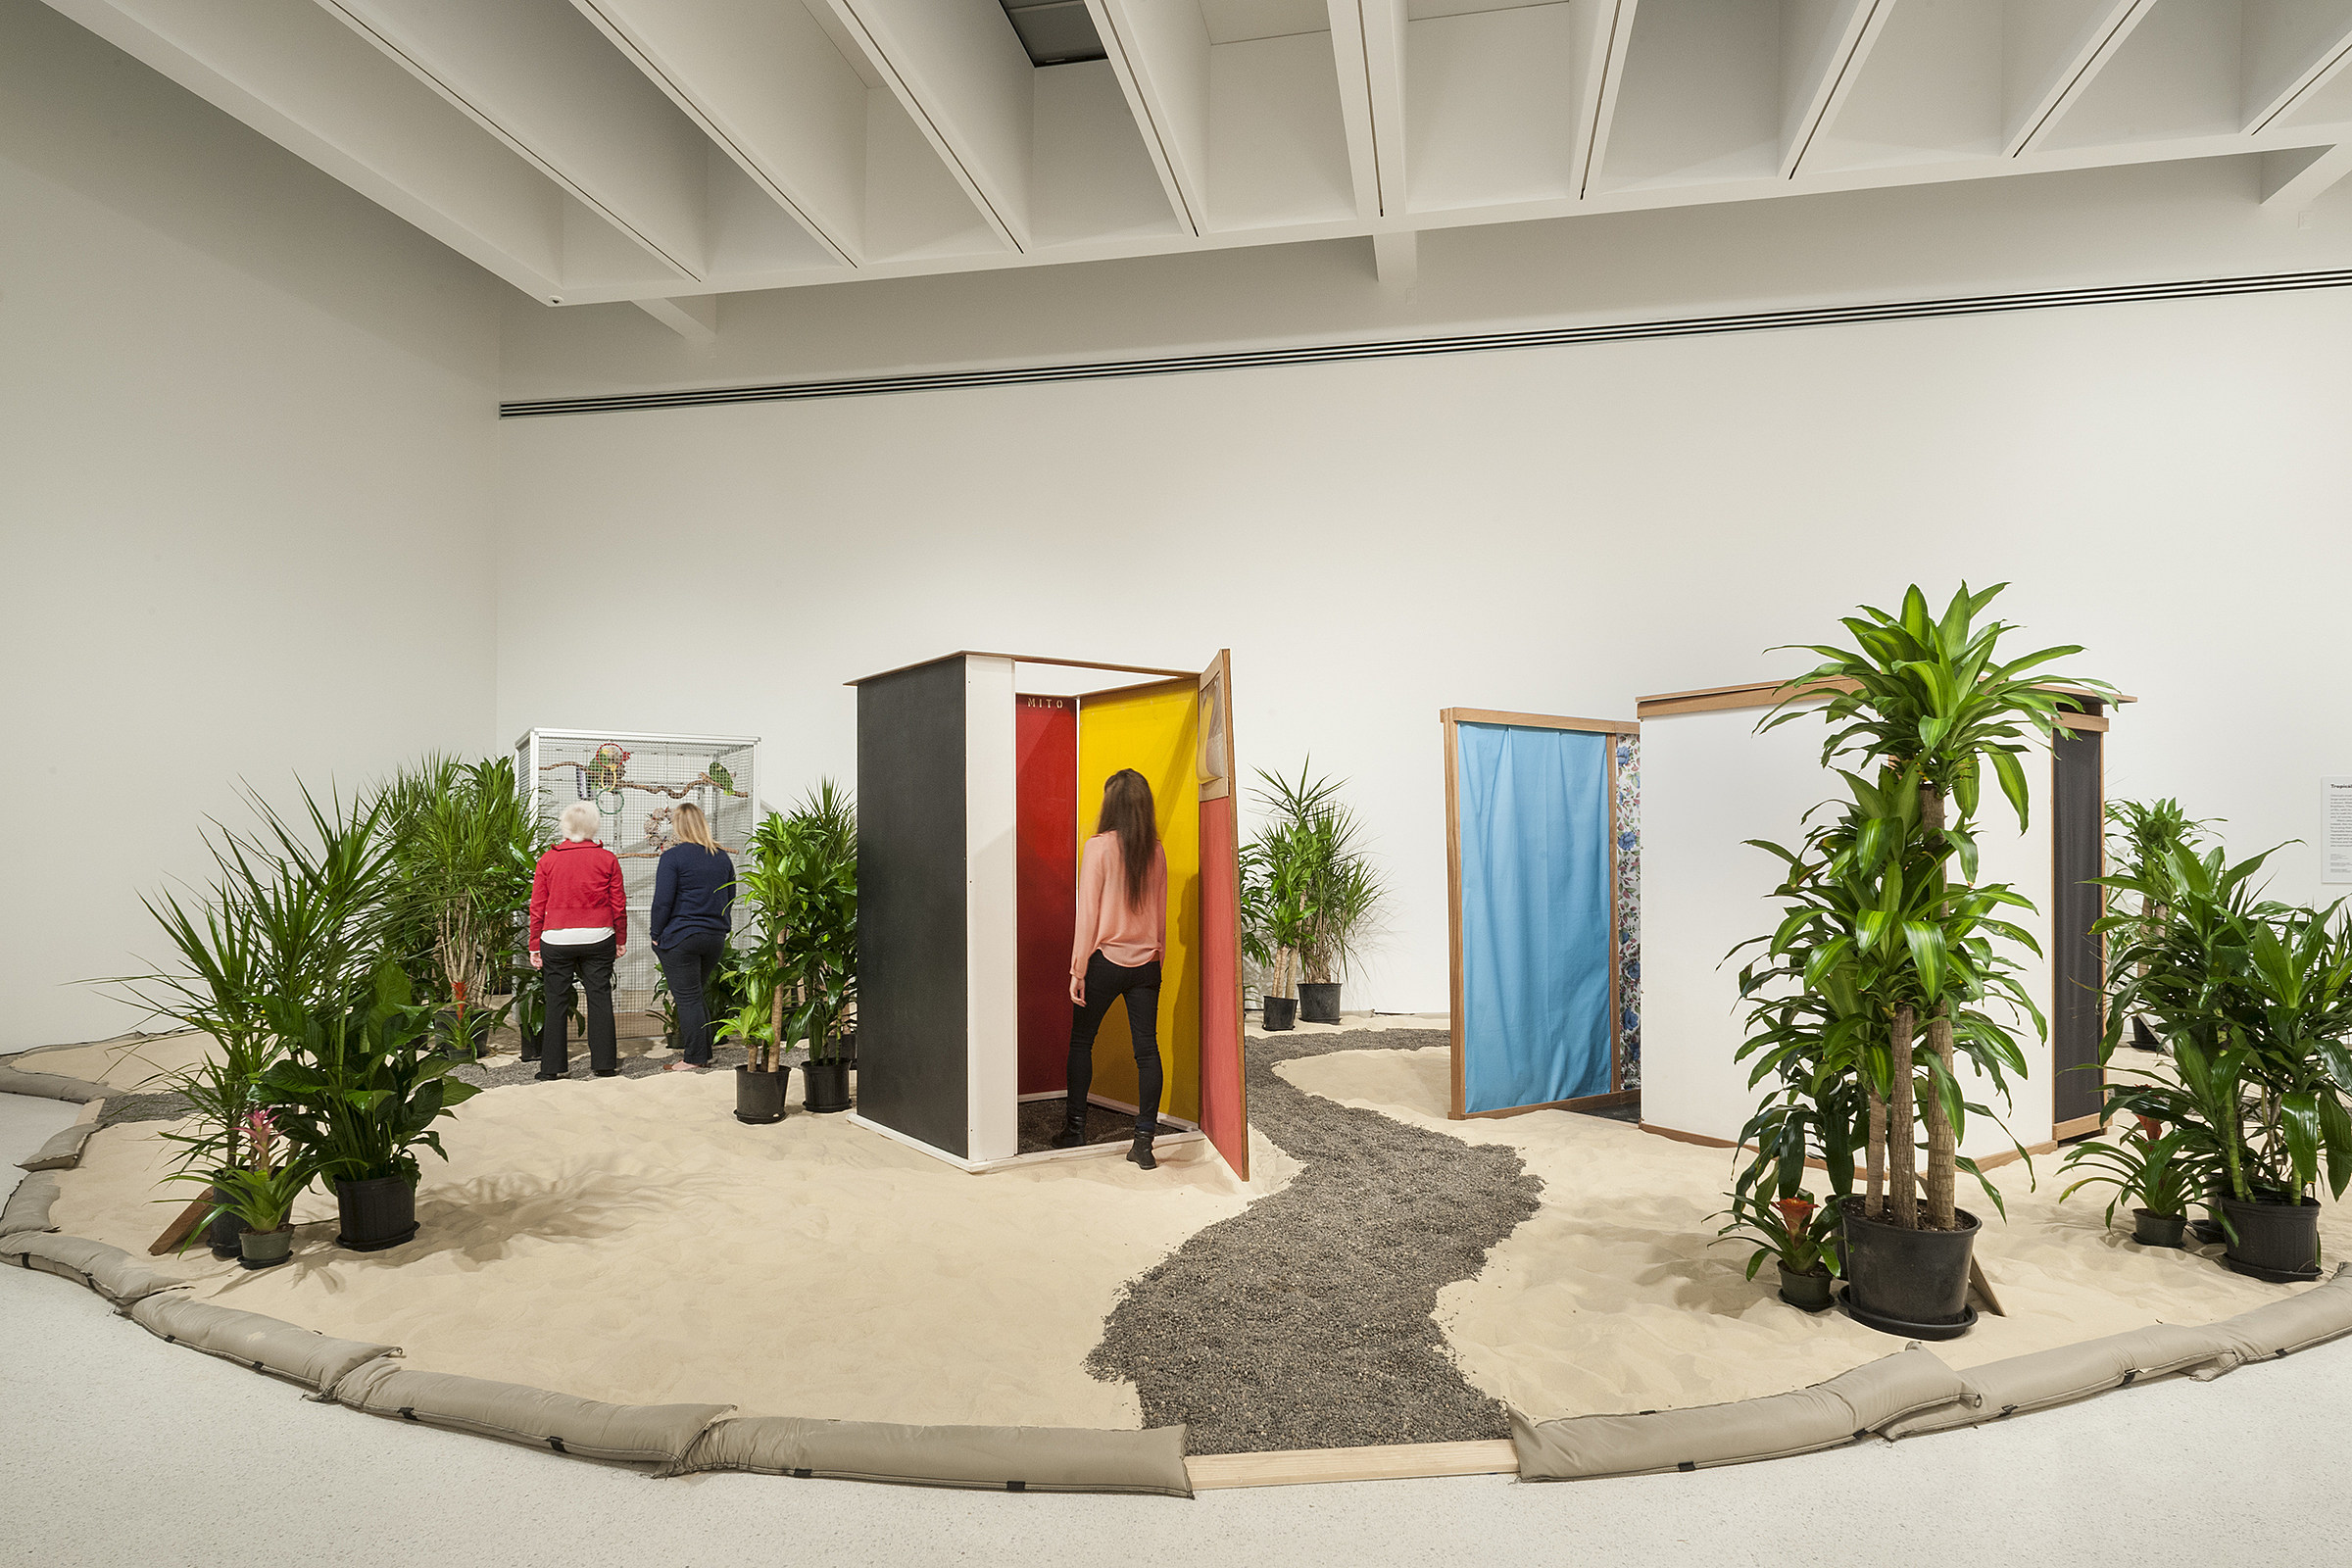 Hélio Oiticica (b. 1937), Tropicália, 1966–67. Plants, sand, birds, and poems by Roberta Camila Salgado. César and Claudio Oiticica Collection, Rio de Janeiro. © César and Claudio Oiticica, Rio de Janeiro. Image courtesy Carnegie Museum of Art, Pittsburgh. Photograph by Bryan Conley